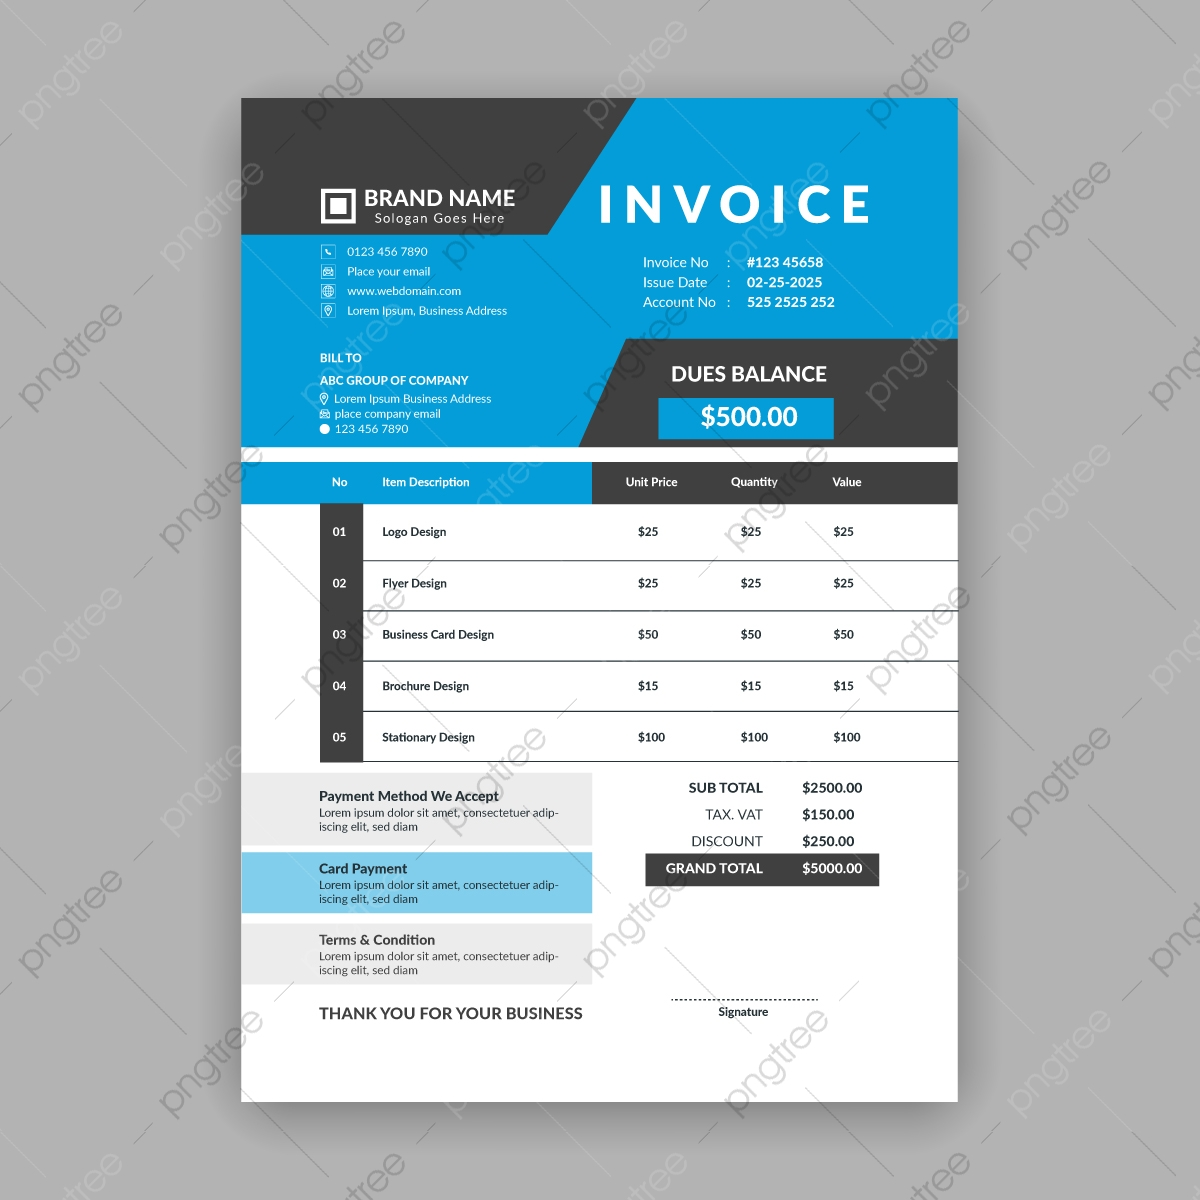 Invoice Png Vector Psd And Clipart With Transparent Background For Free Download Pngtree